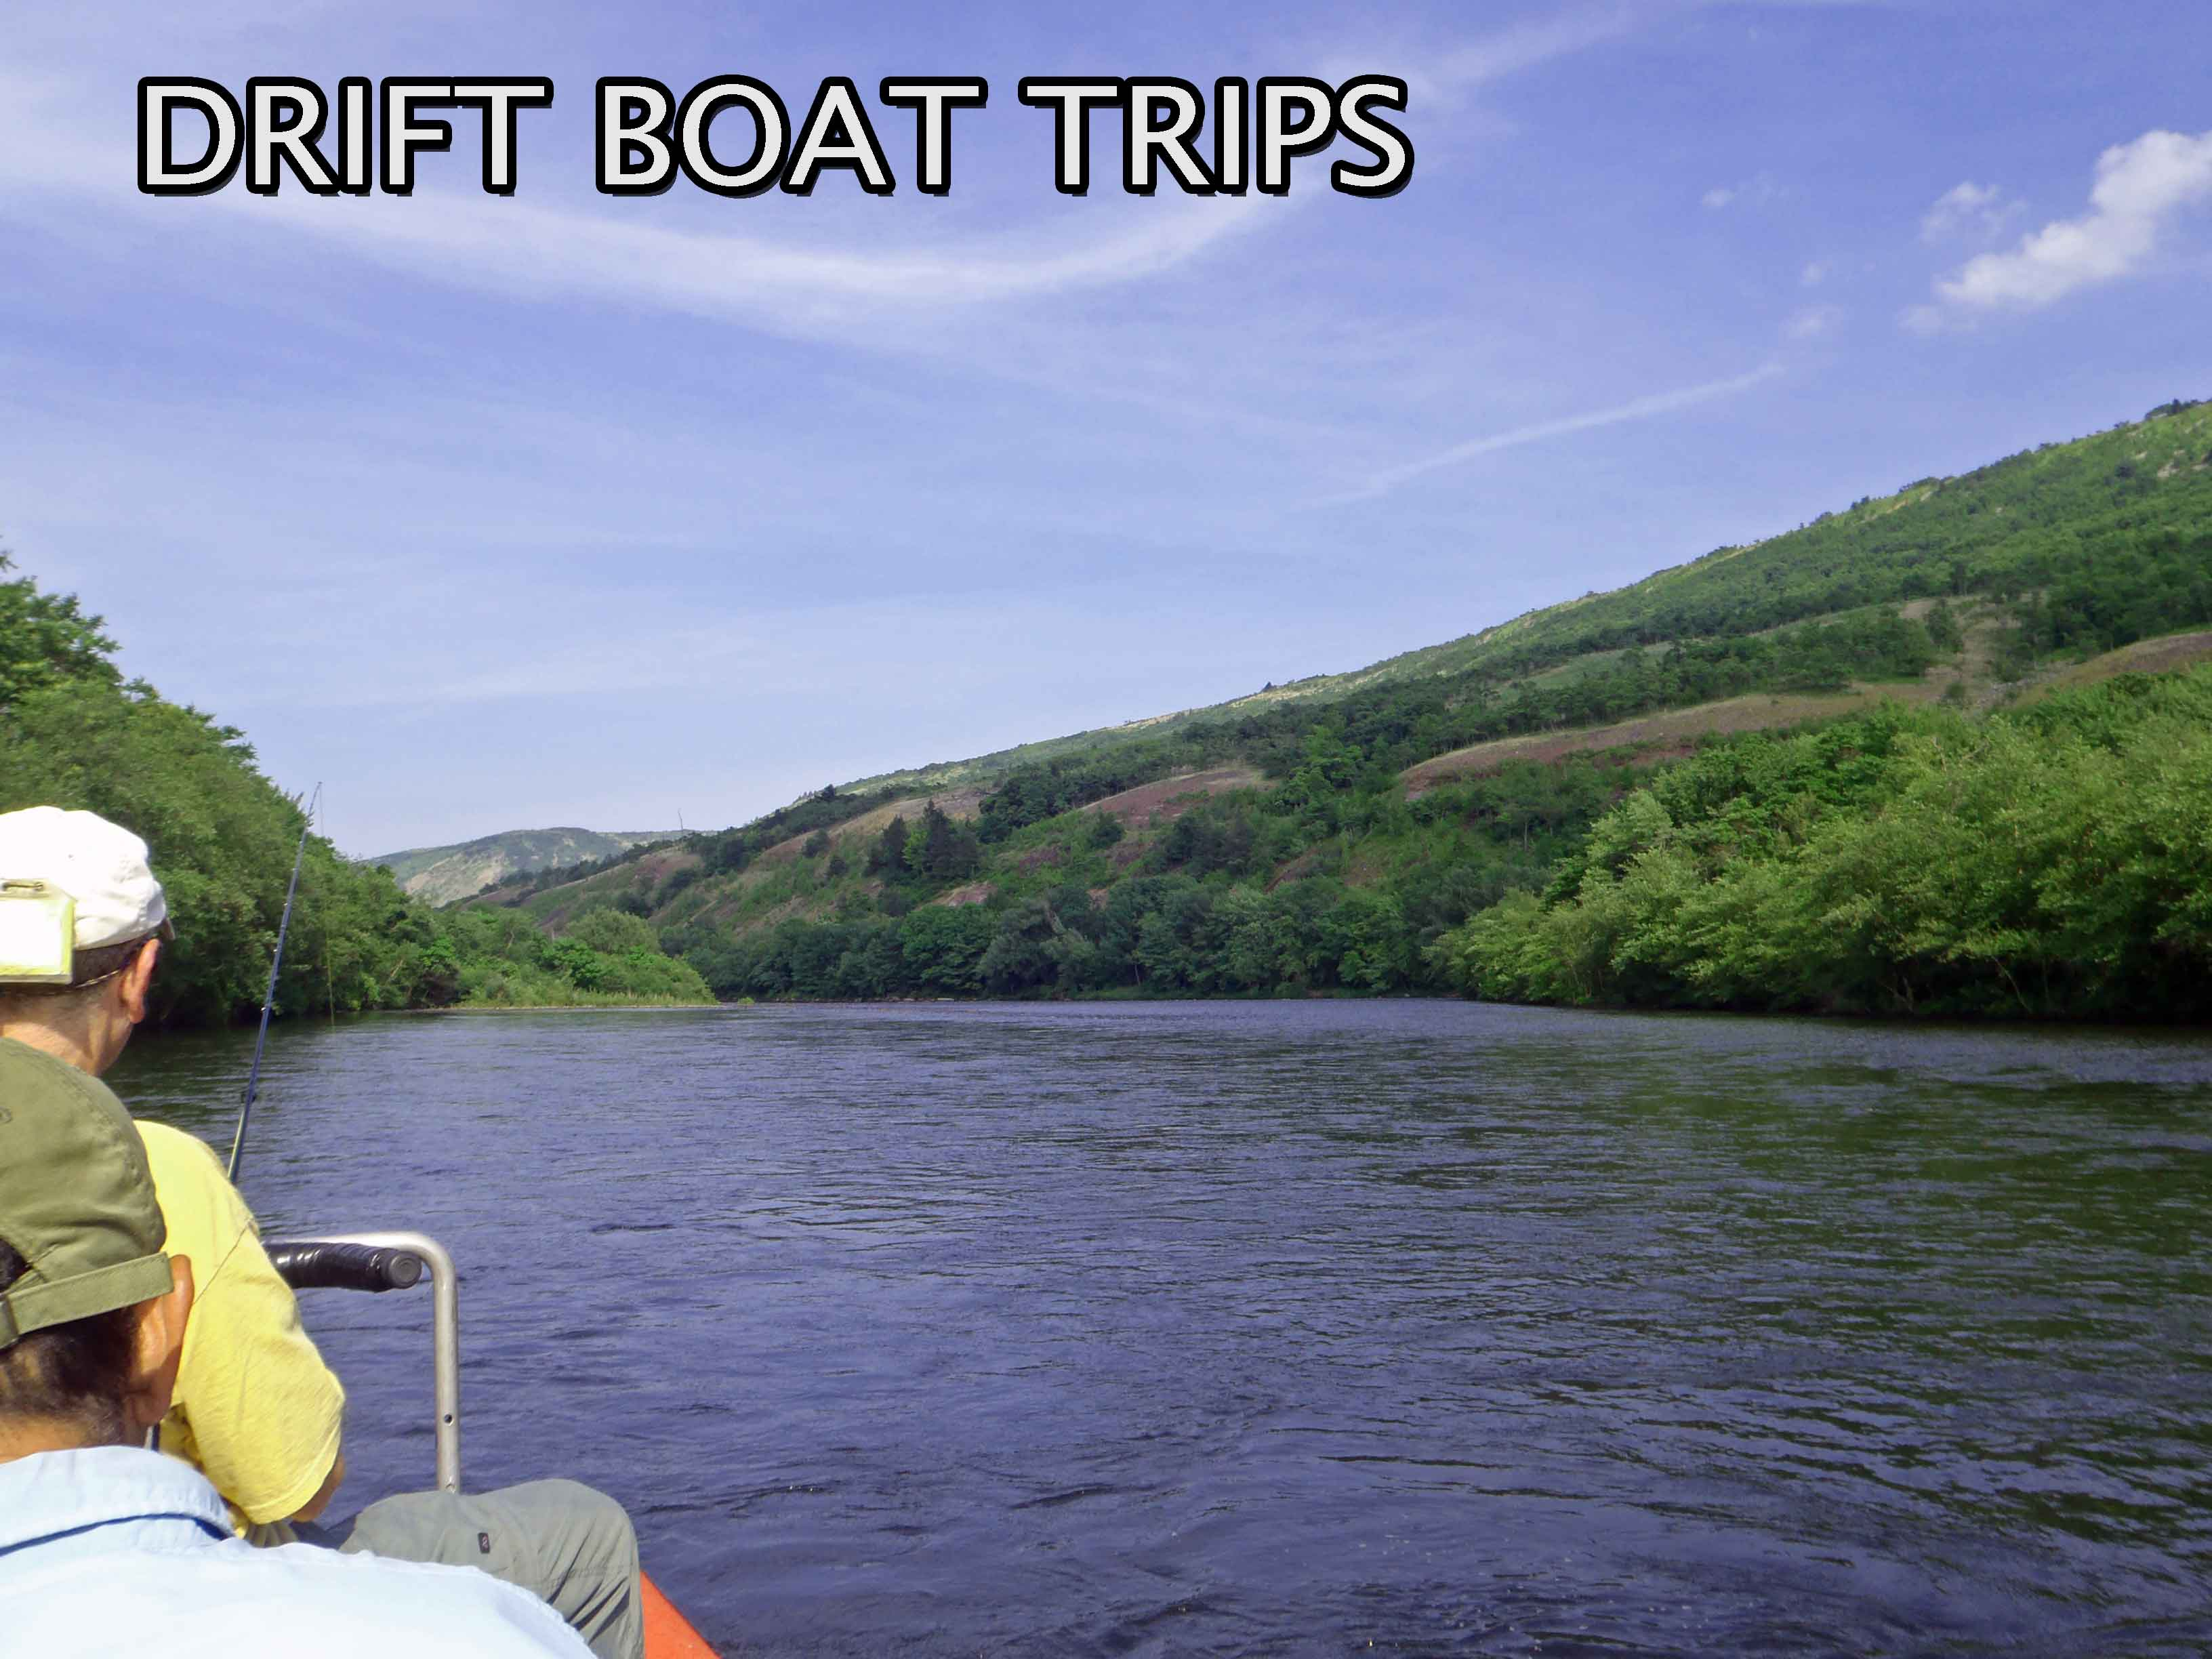 Drift Boat Trips On The Lehigh, Delaware, Susquehanna and Juniata Rivers